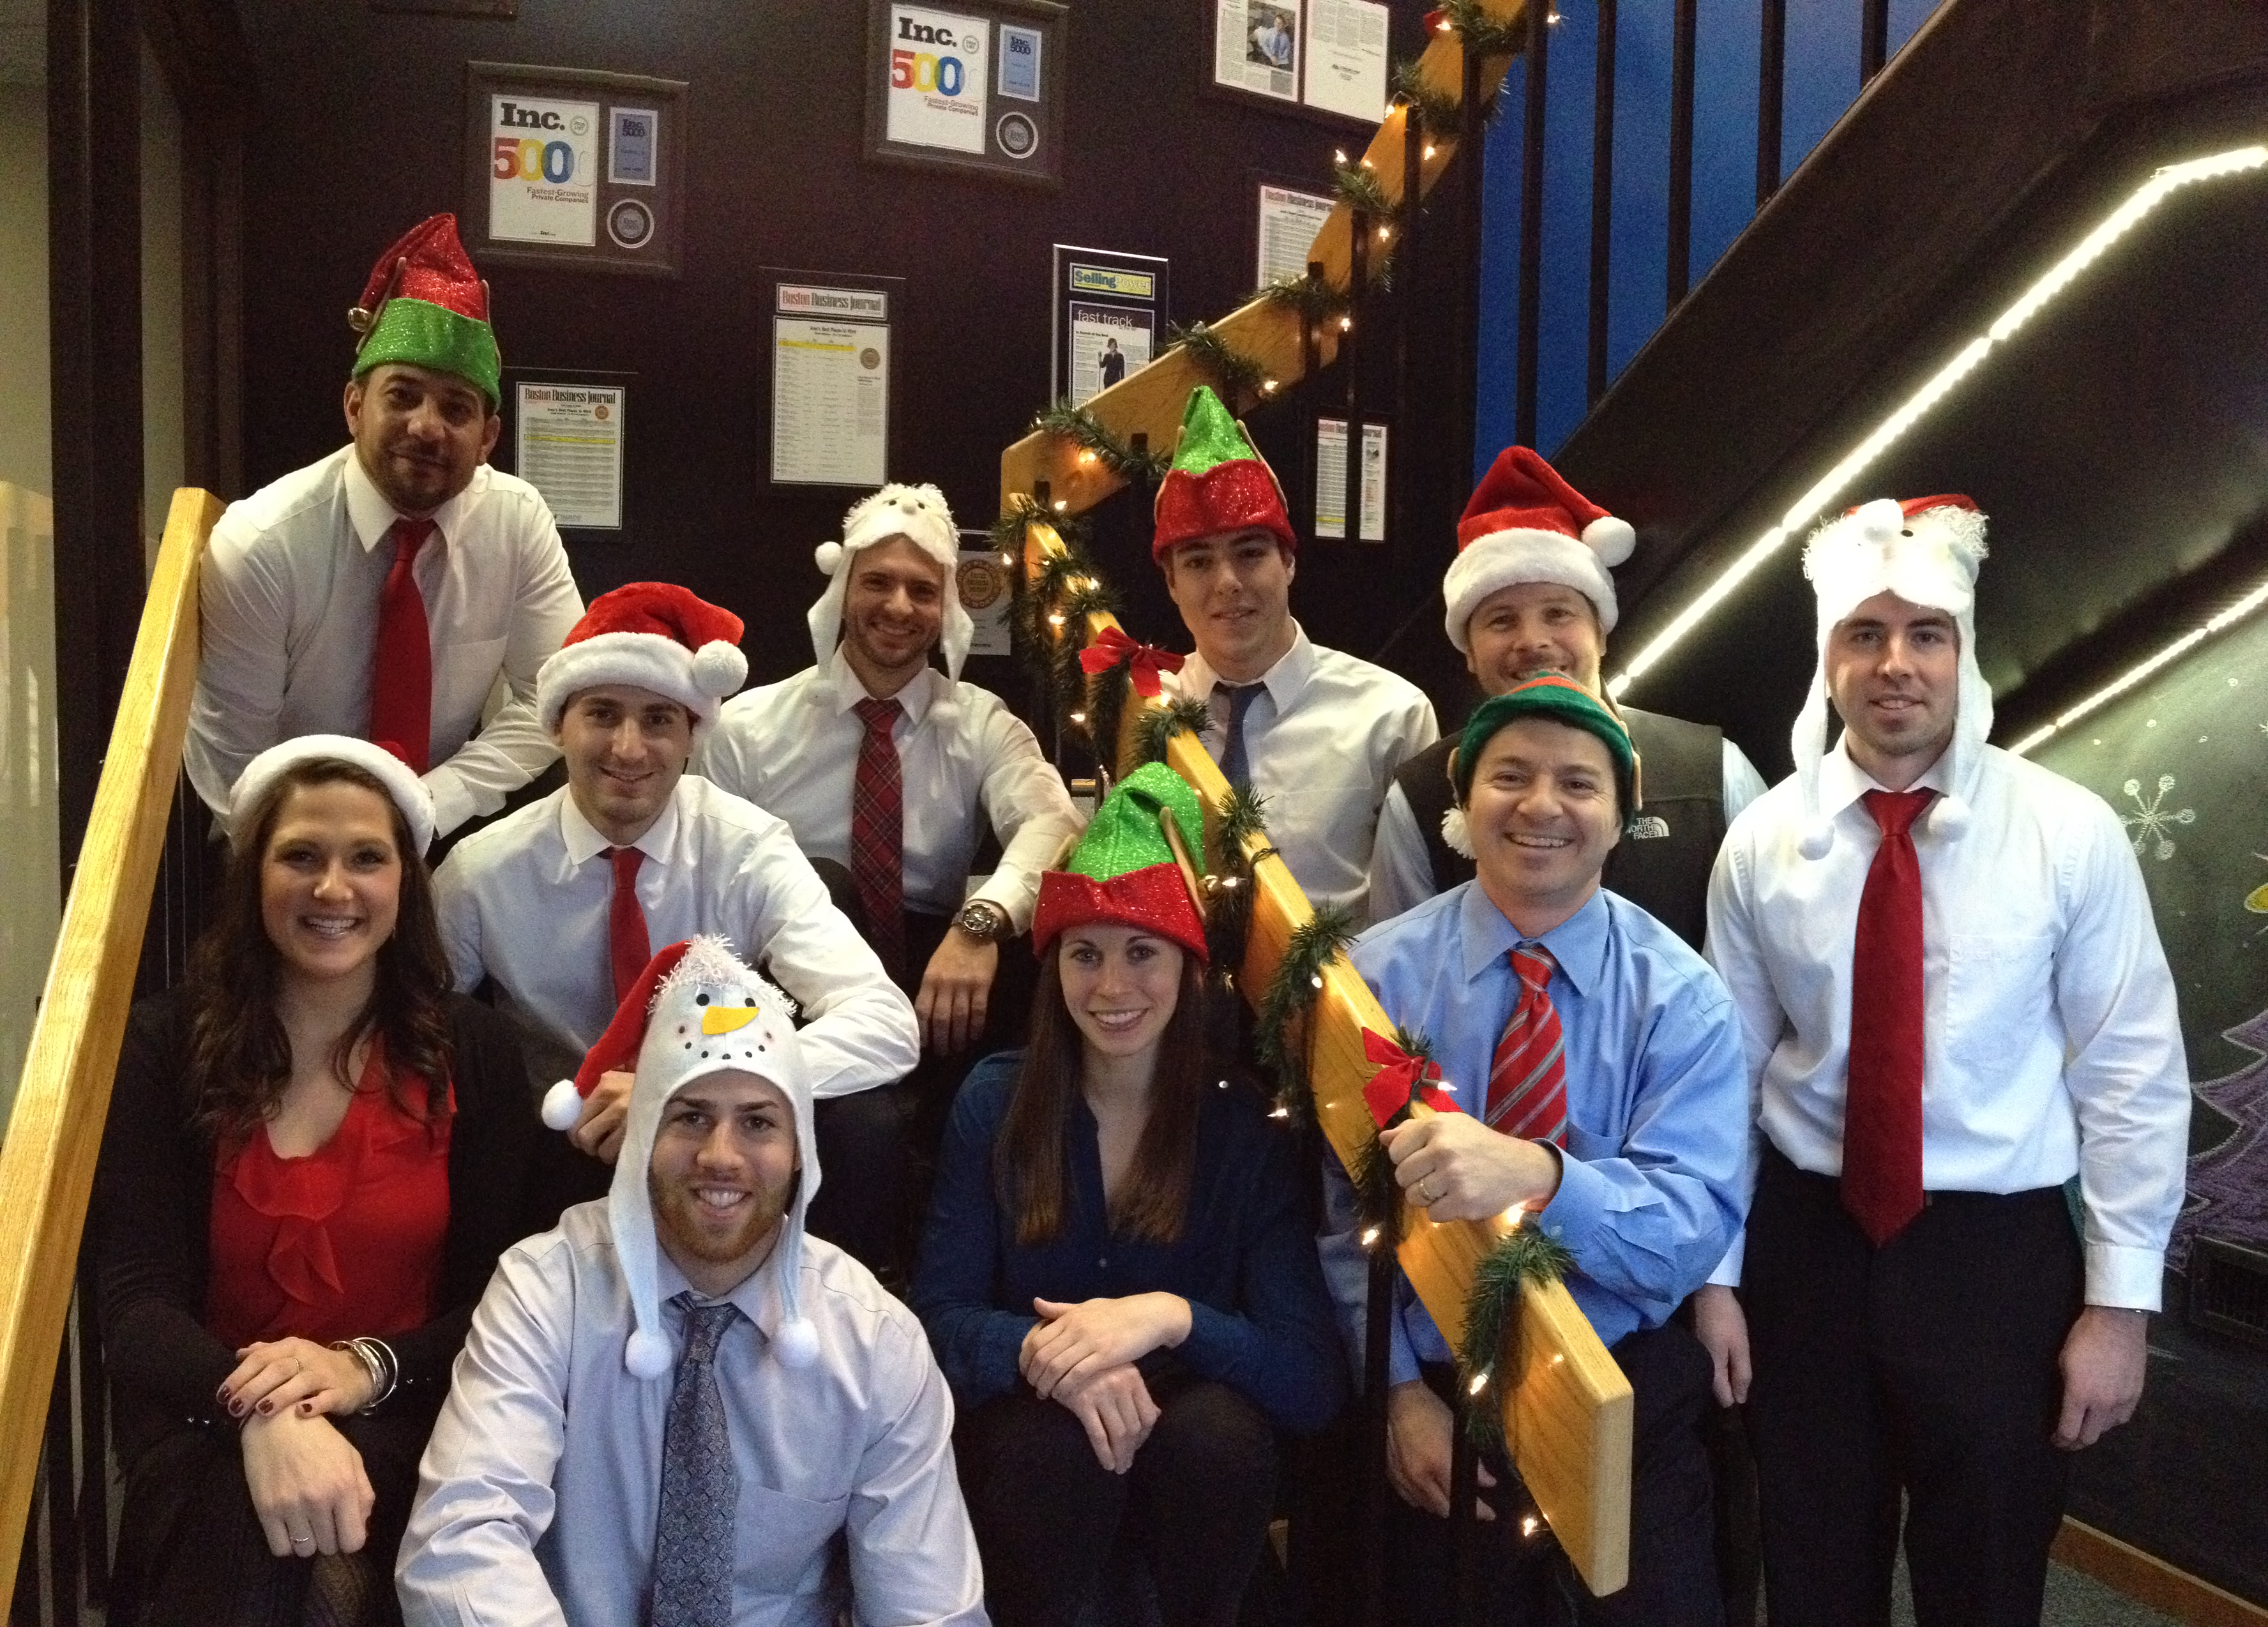 Treeline, Inc. taking a holiday picture